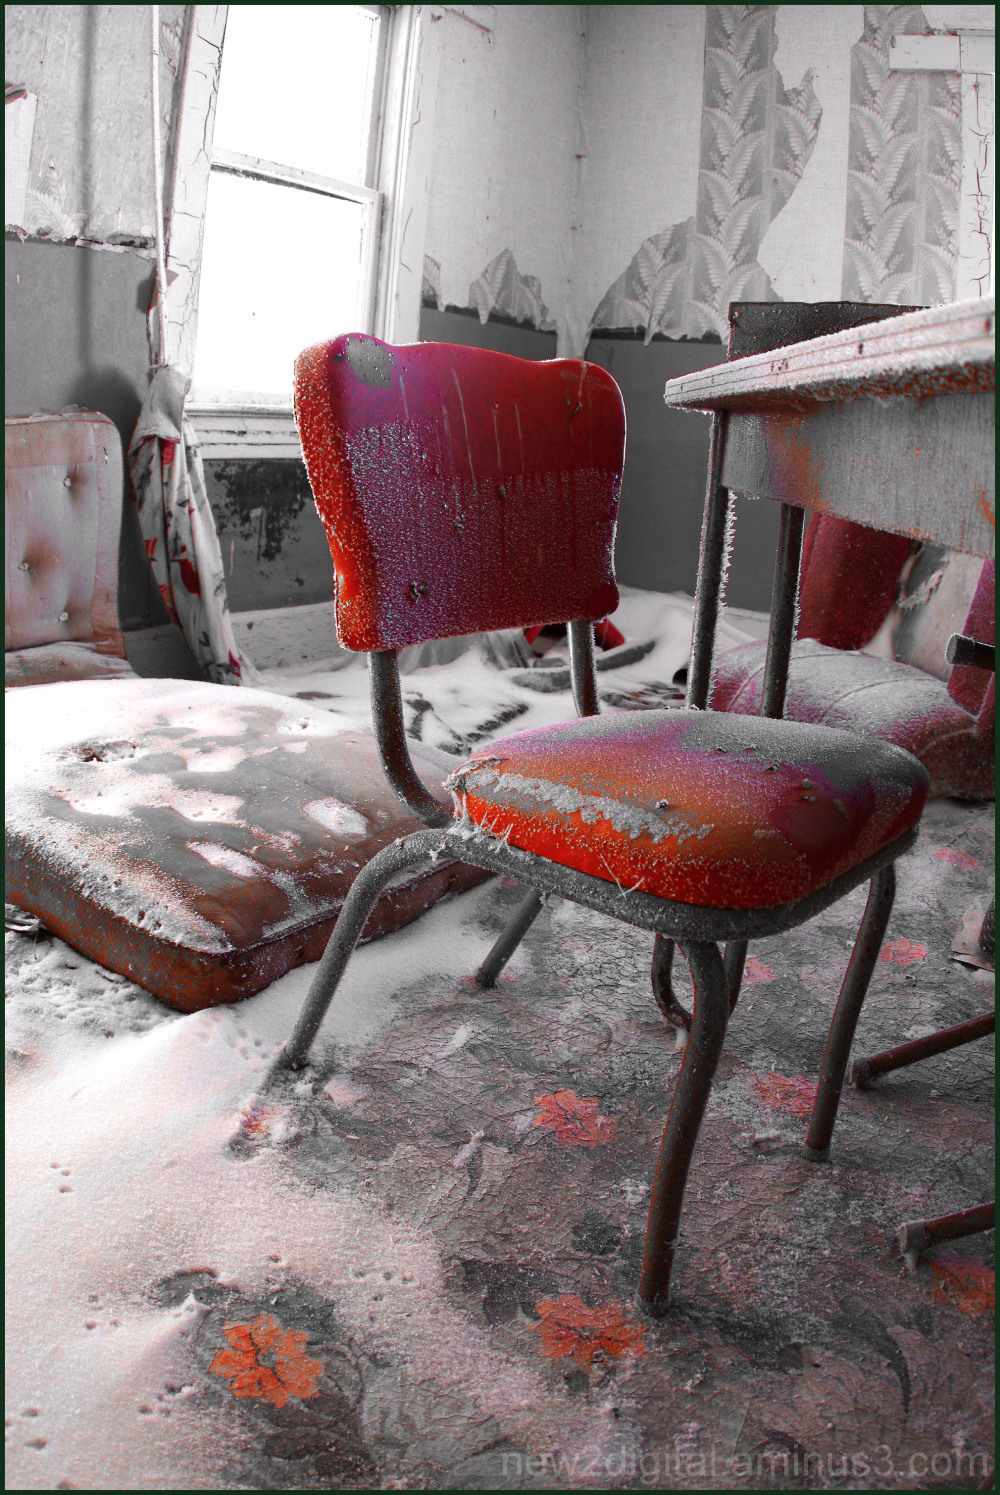 The Red Kitchen Chair 3/3